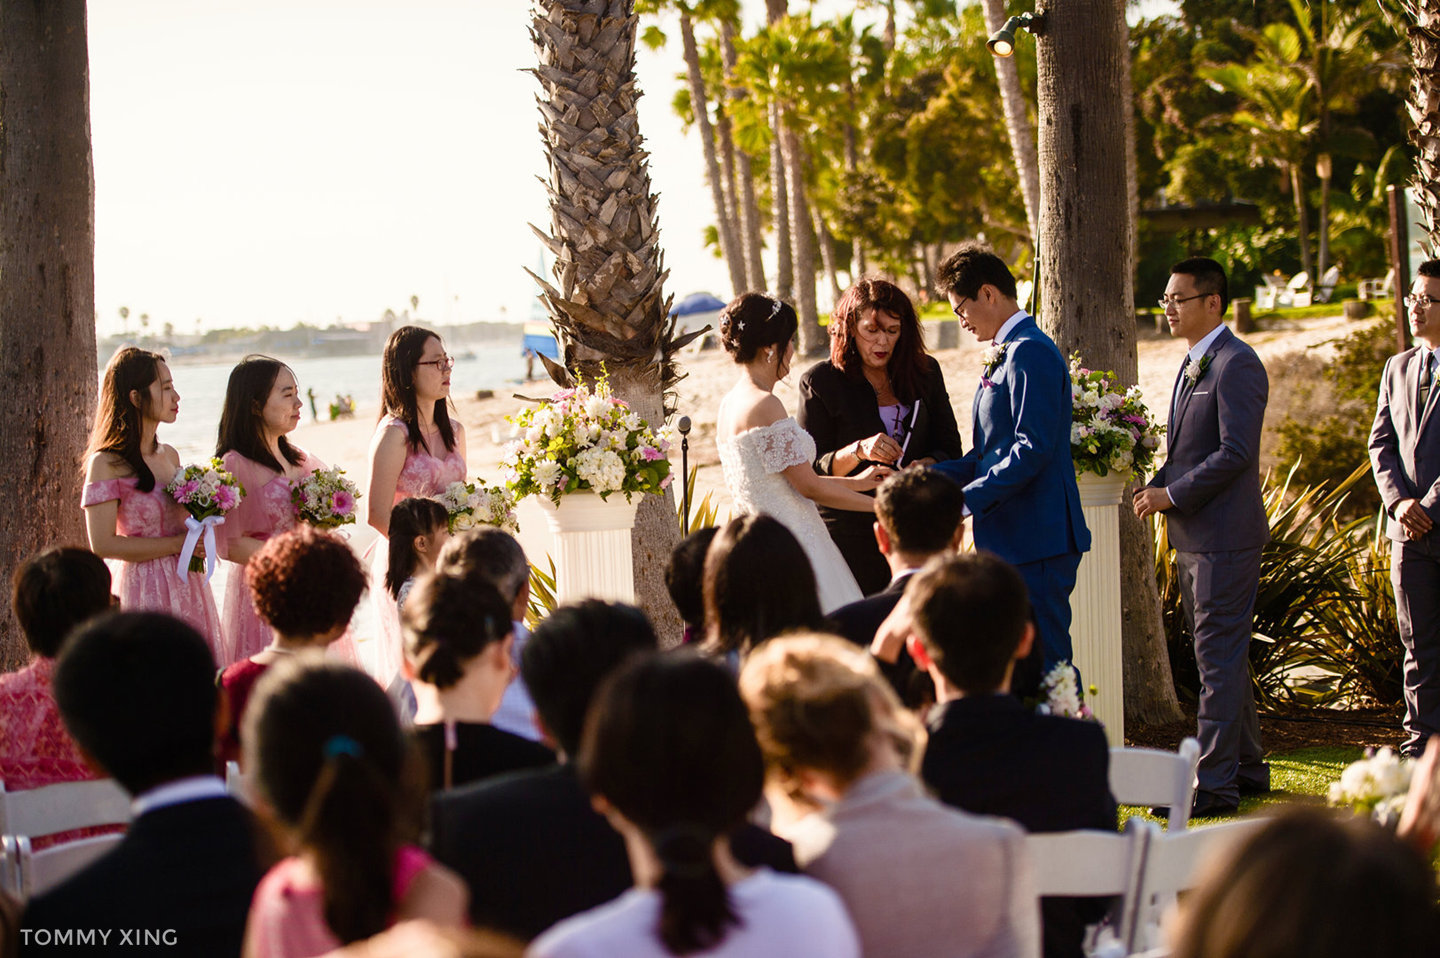 Paradise Point Resort Wedding Xiaolu & Bin San Diego 圣地亚哥婚礼摄影跟拍 Tommy Xing Photography 洛杉矶婚礼婚纱照摄影师 148.jpg